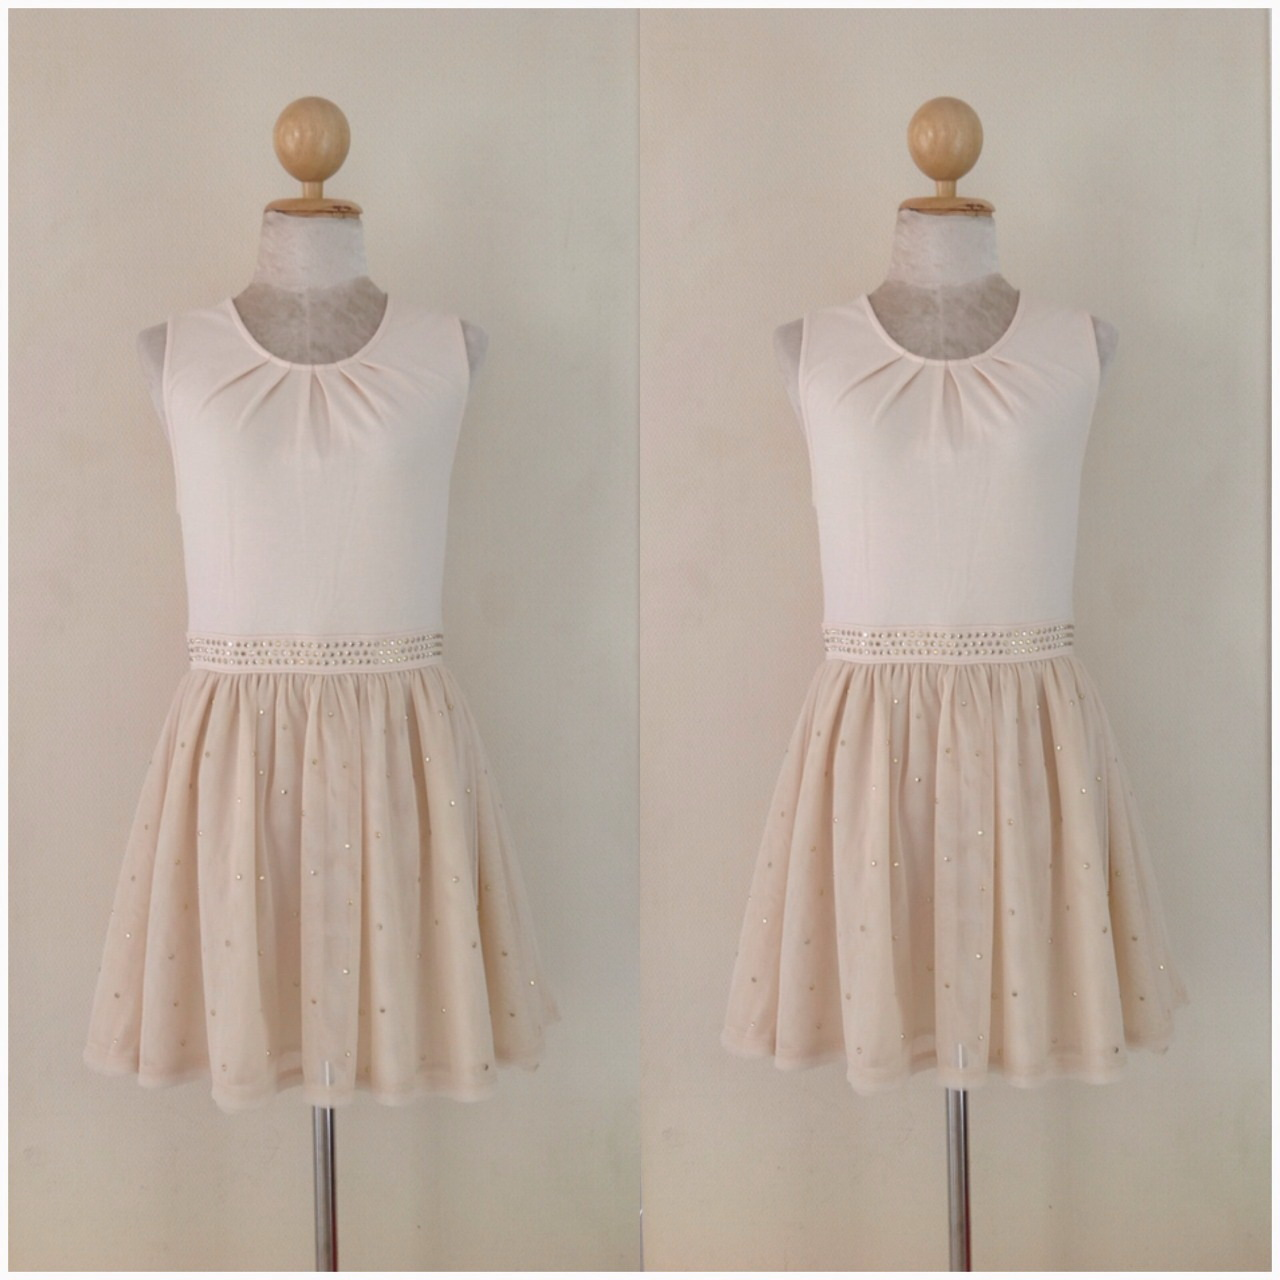 Topshop Nude Dress Size Uk8-Uk10